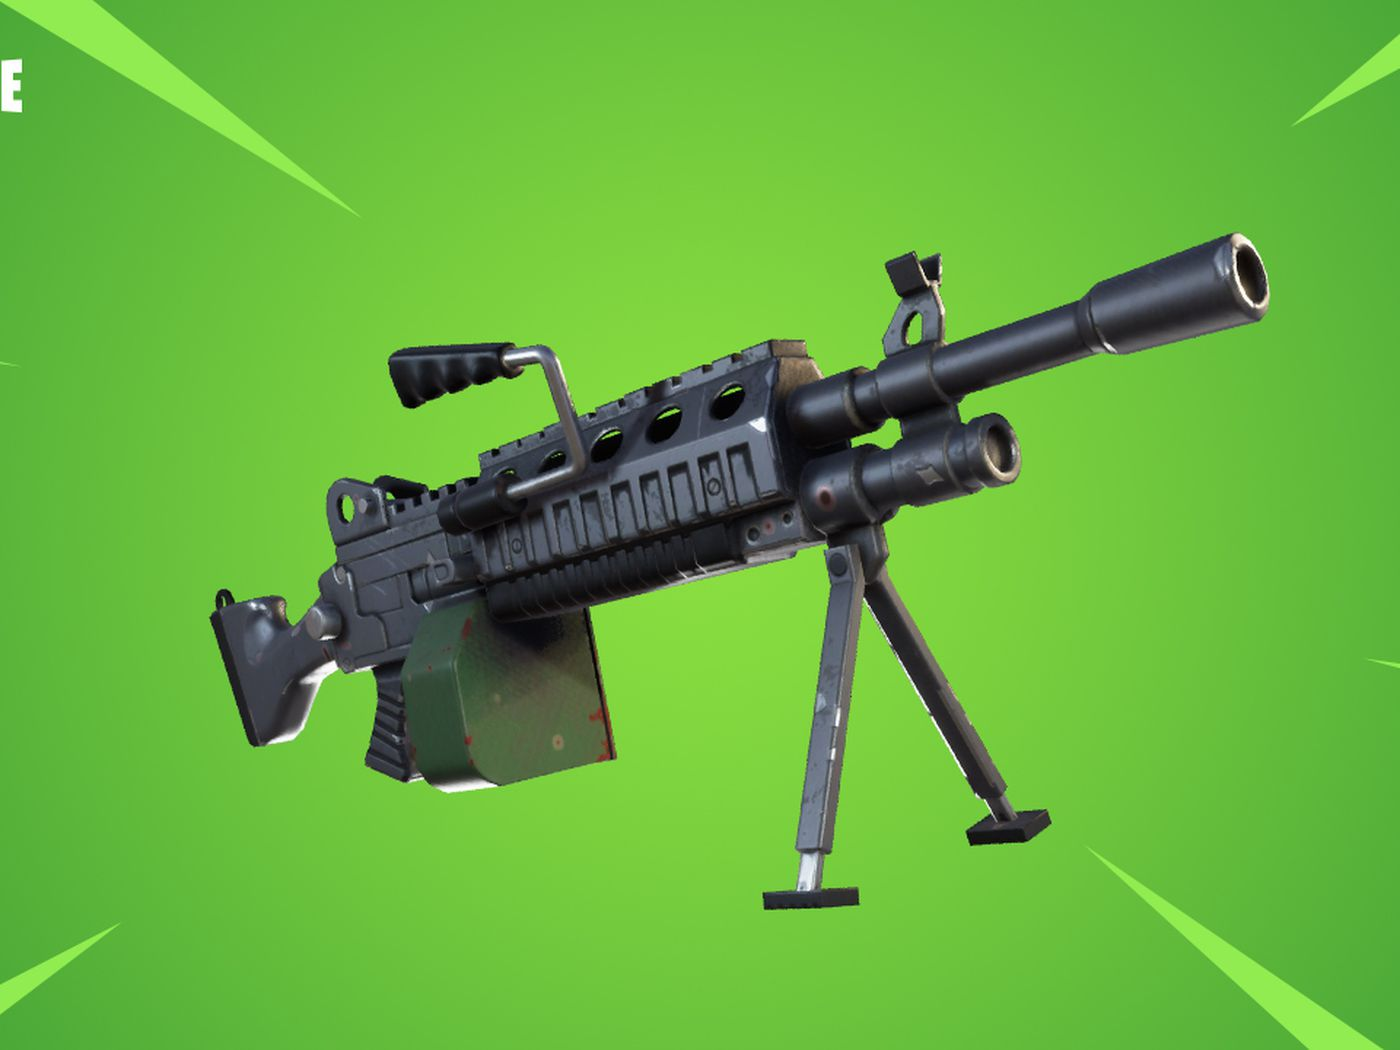 Fortnite Update Adds Lmgs And Fixes Dick Bullets Polygon